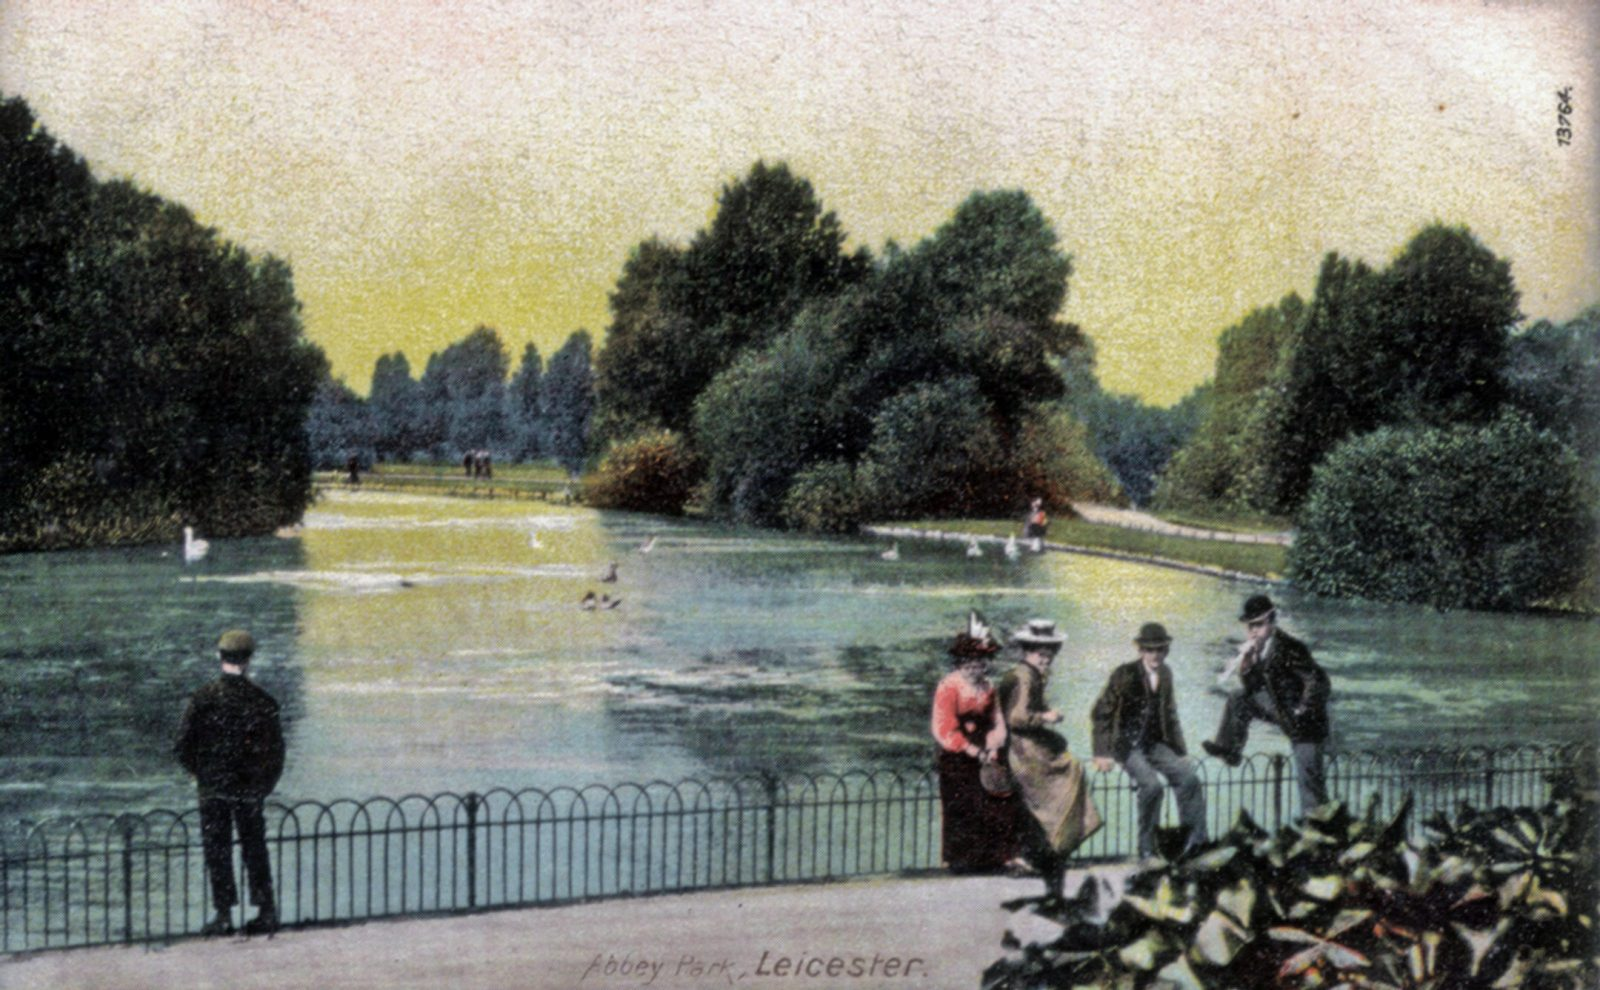 Abbey Park, Leicester. 1901-1920: Young people meeting by the lake in Abbey Park. (File:1005)